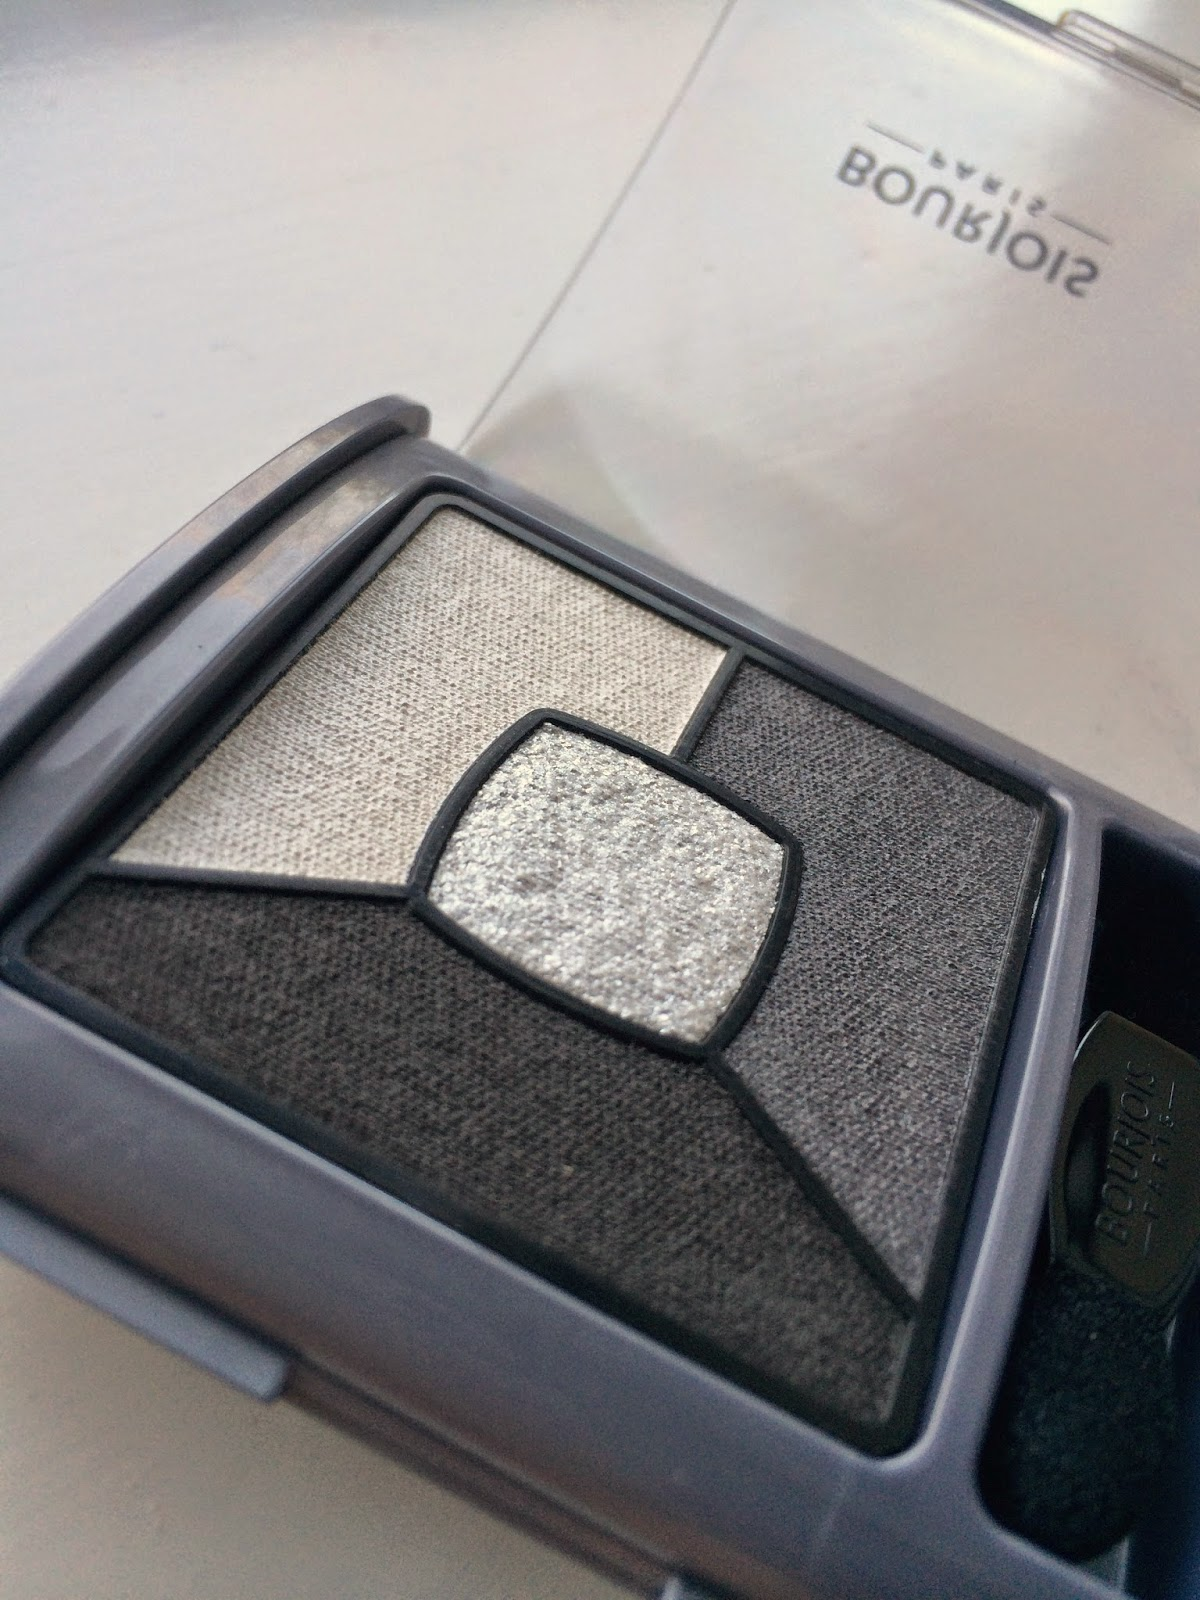 Bourjois-Quad-Smoky-Stories-eyeshadow-grey-and-night-review